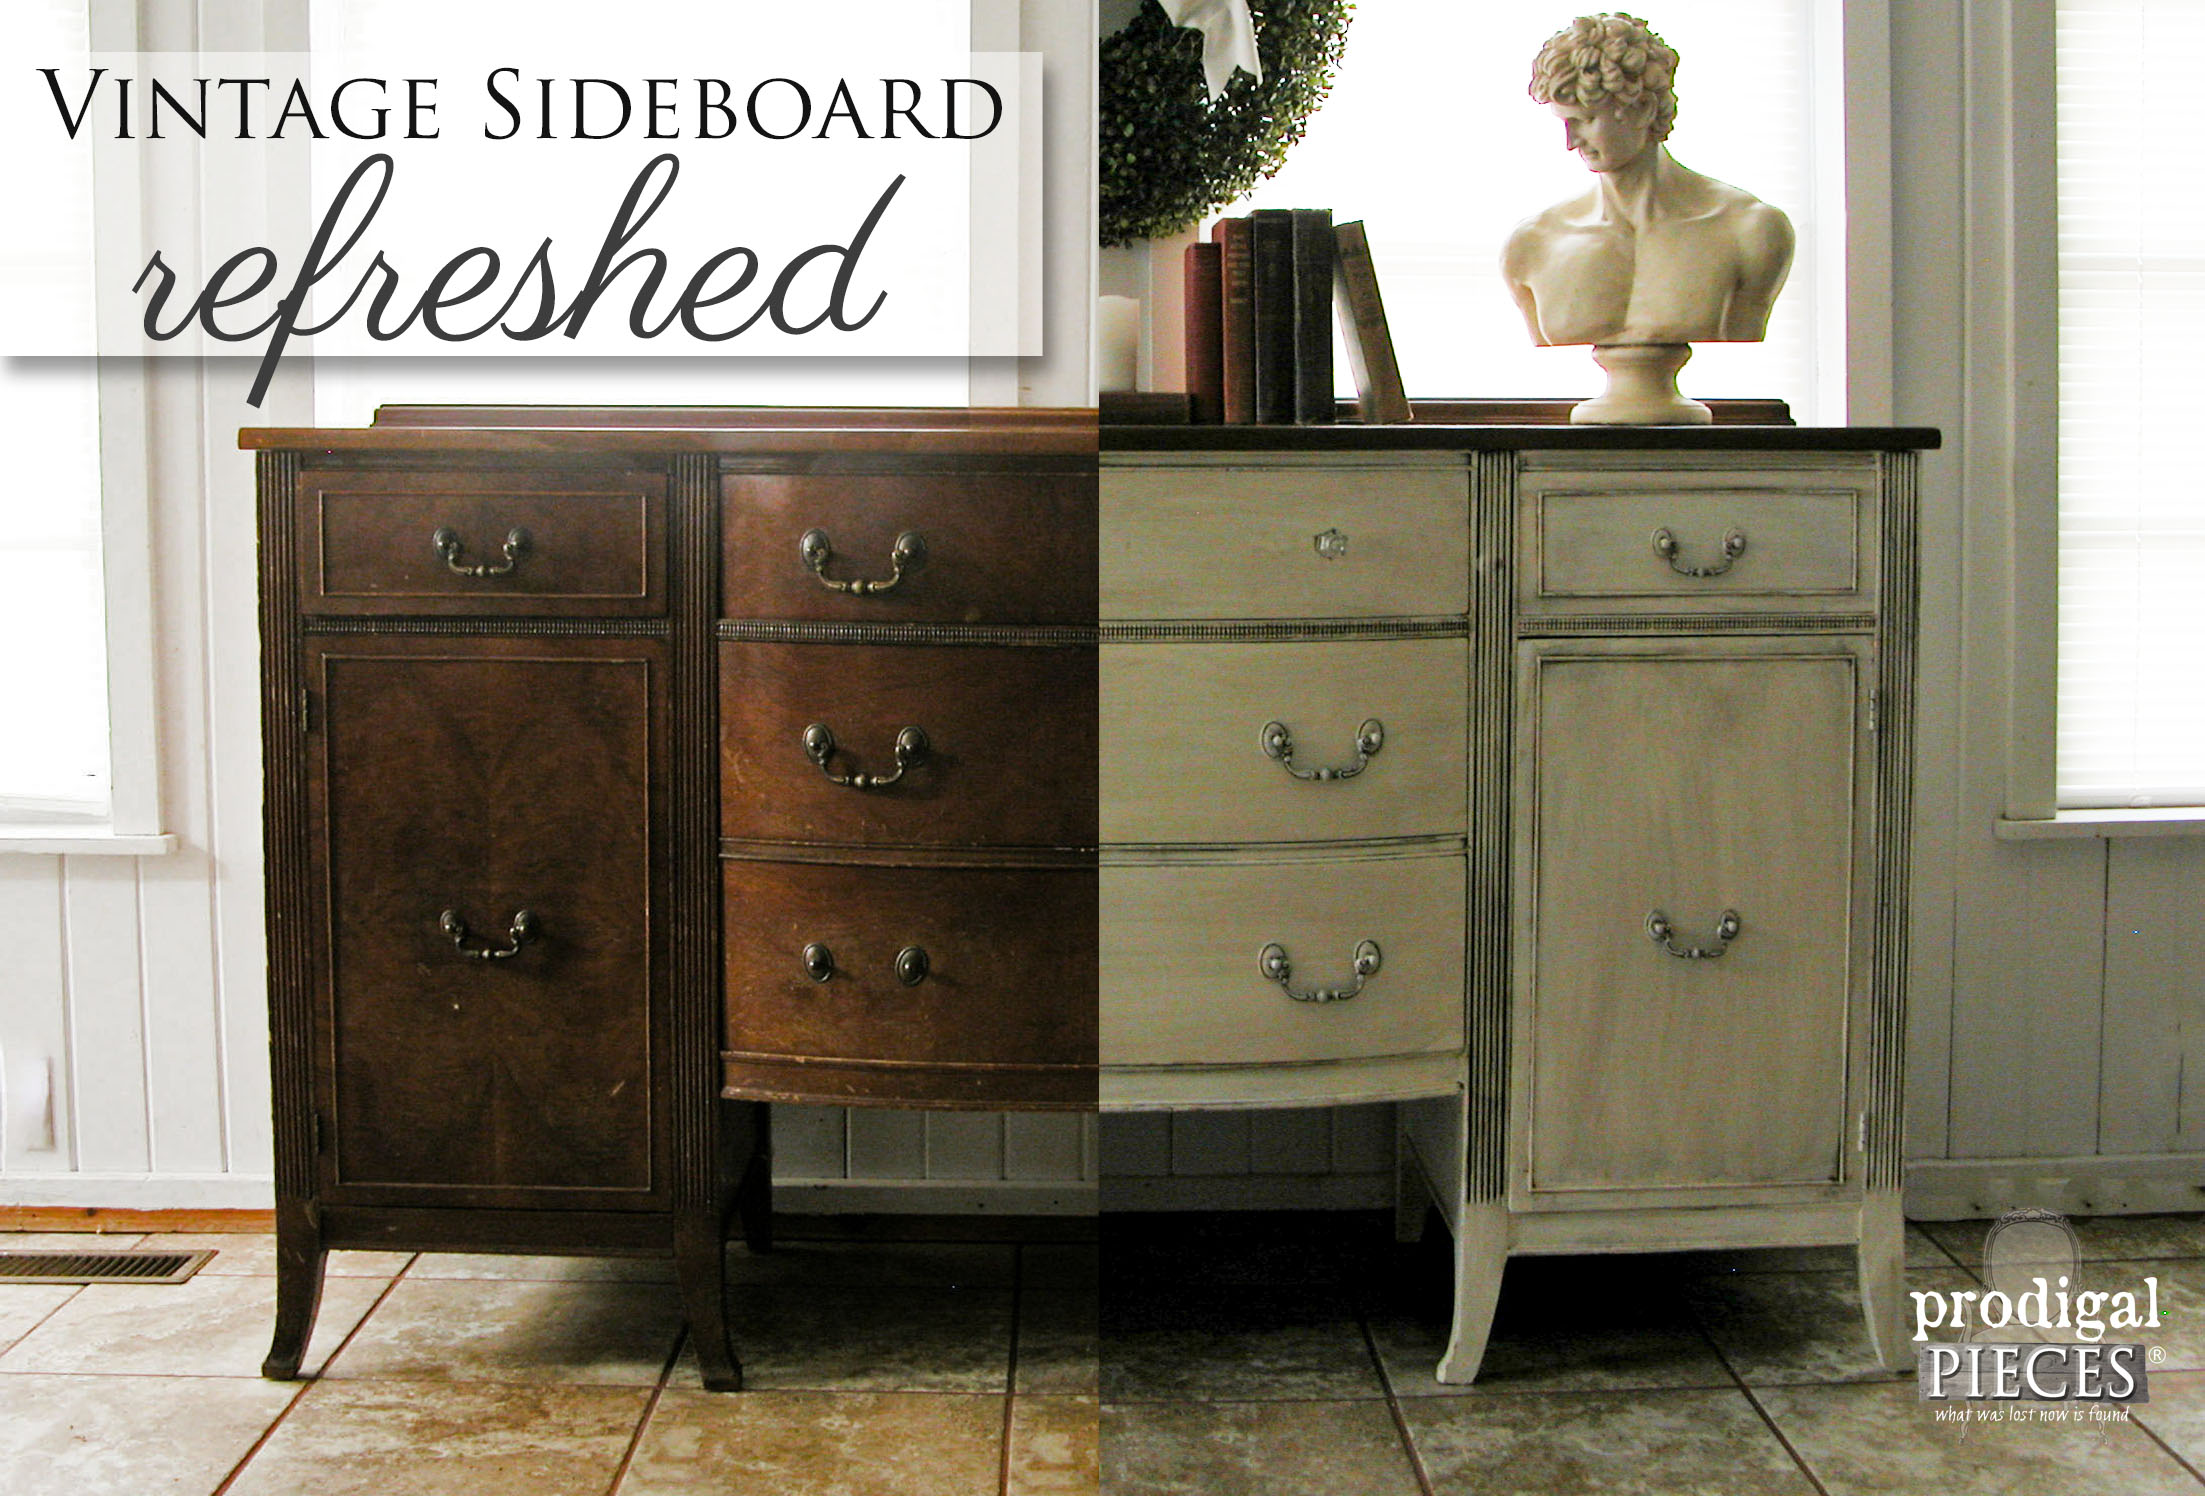 Vintage Sideboard Refreshed with Stain and Paint by Prodigal Pieces | prodigalpieces.com